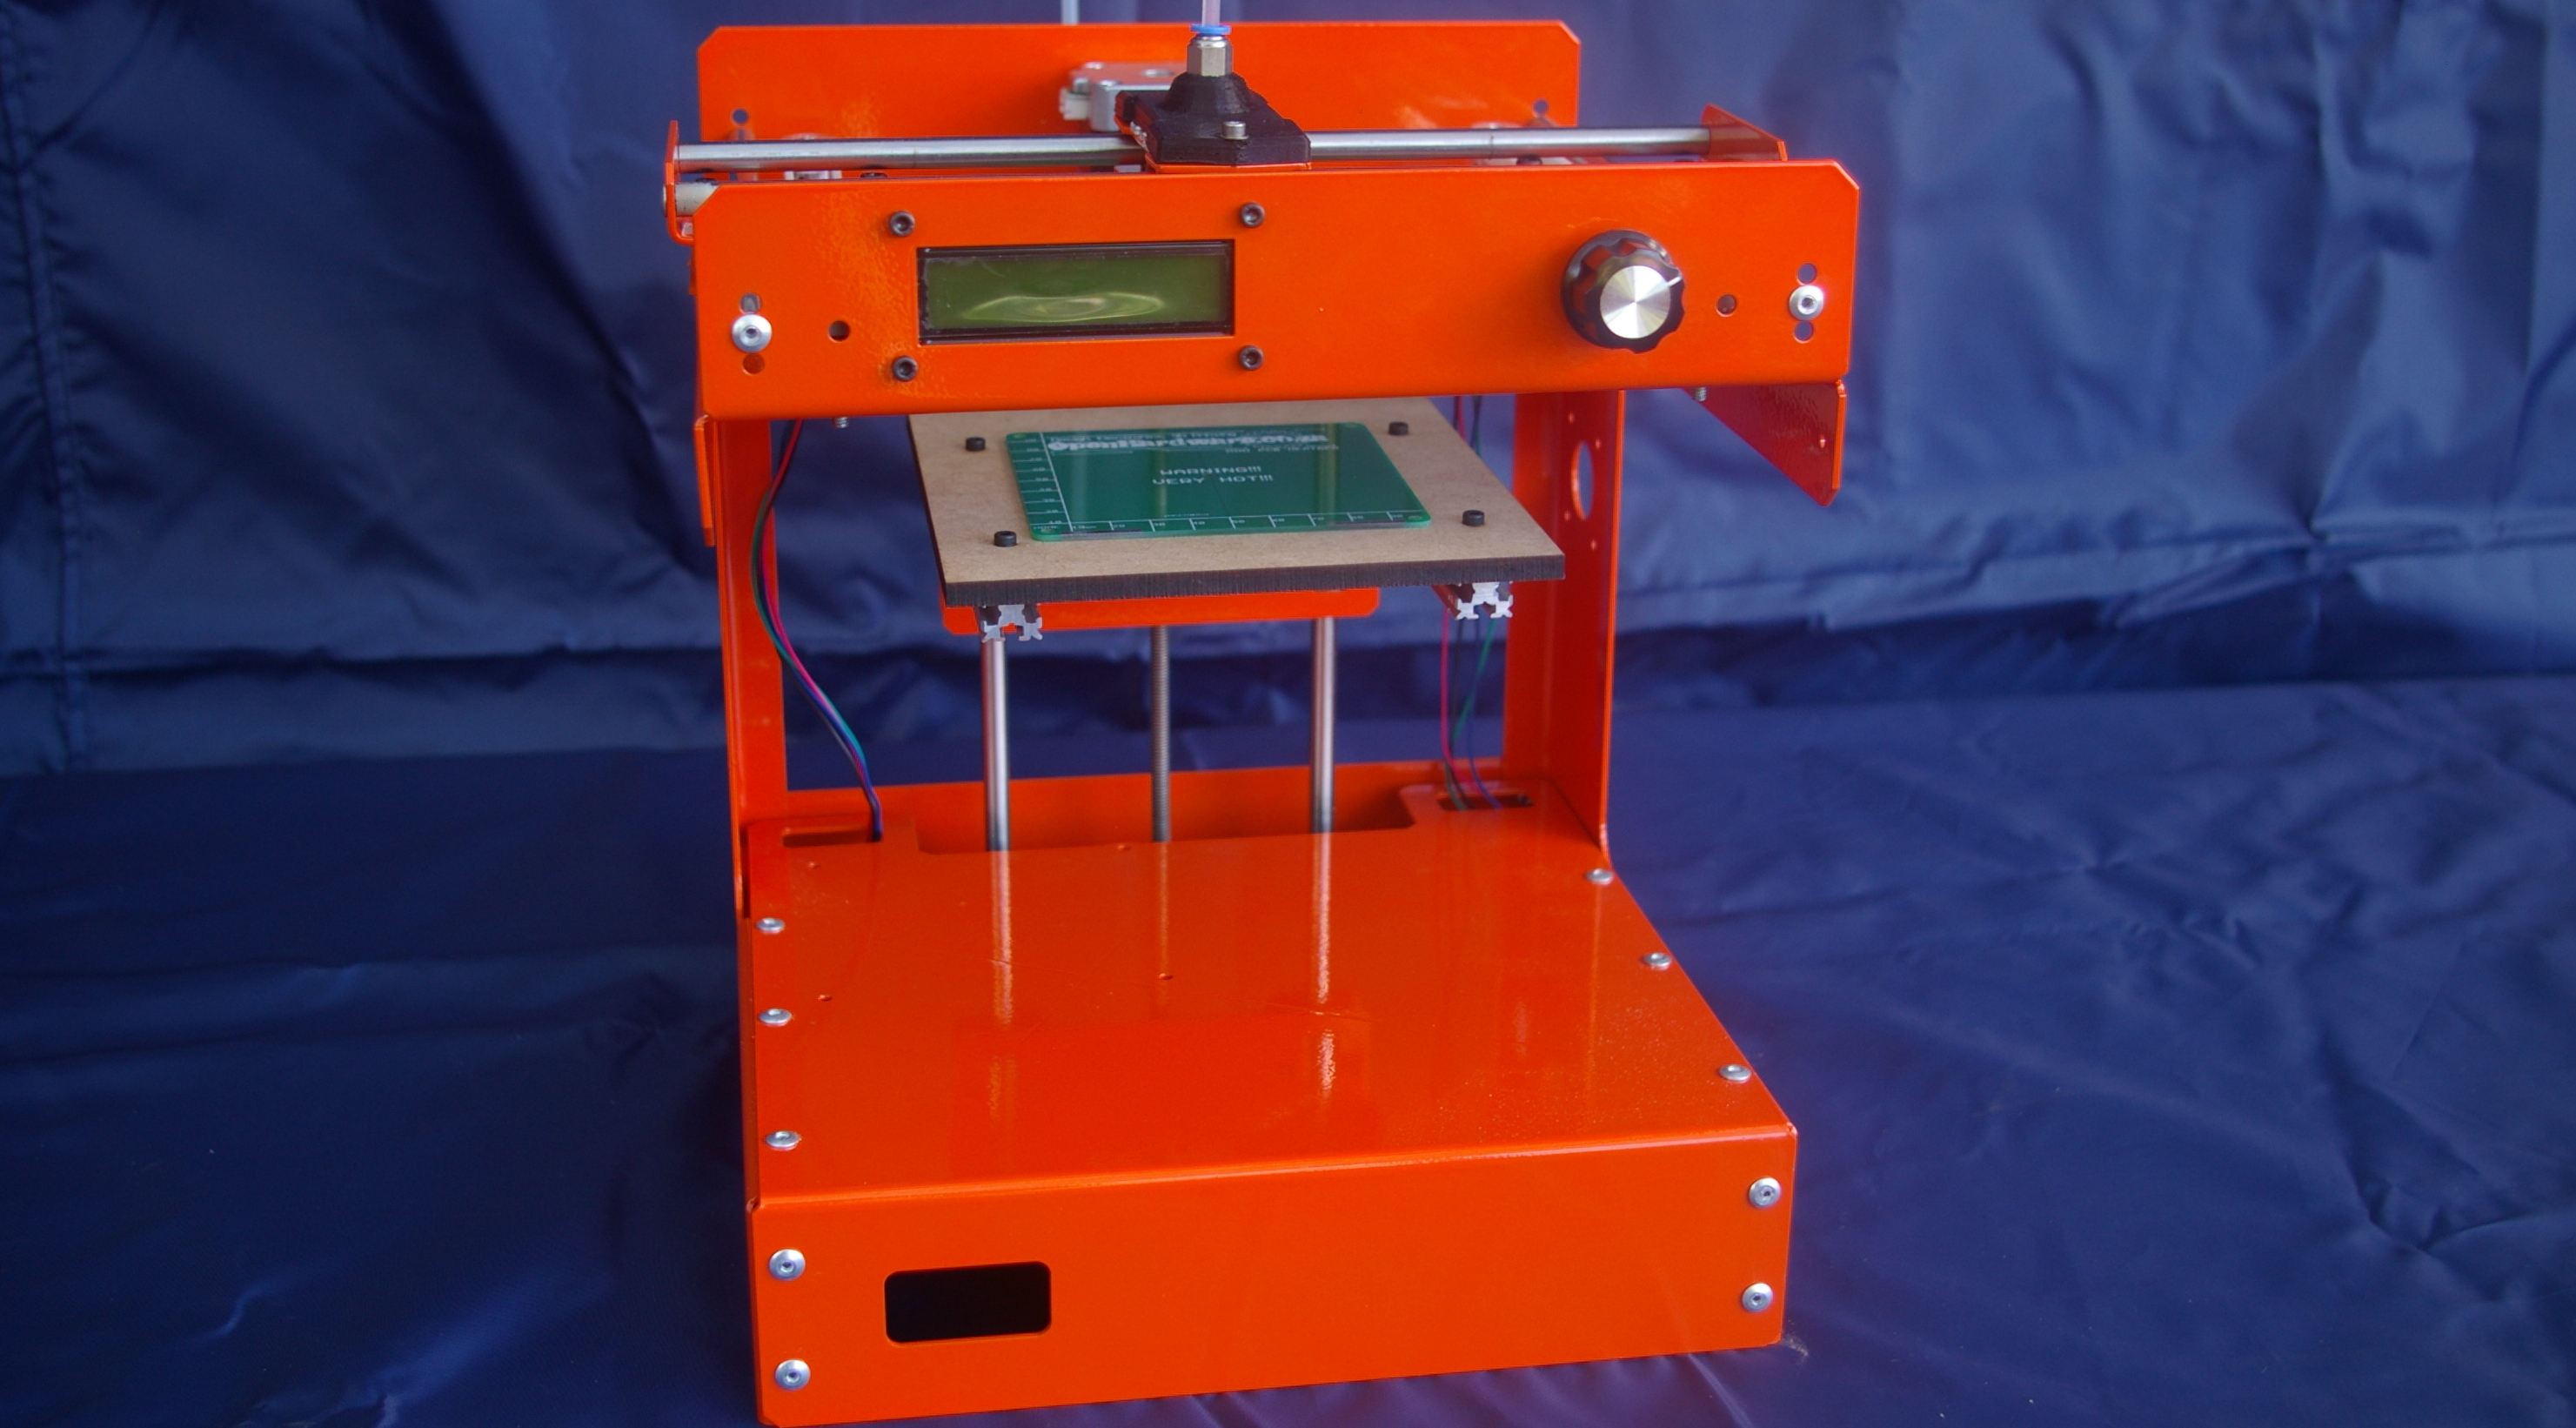 New low cost, SA-designed 3D printer to go into production